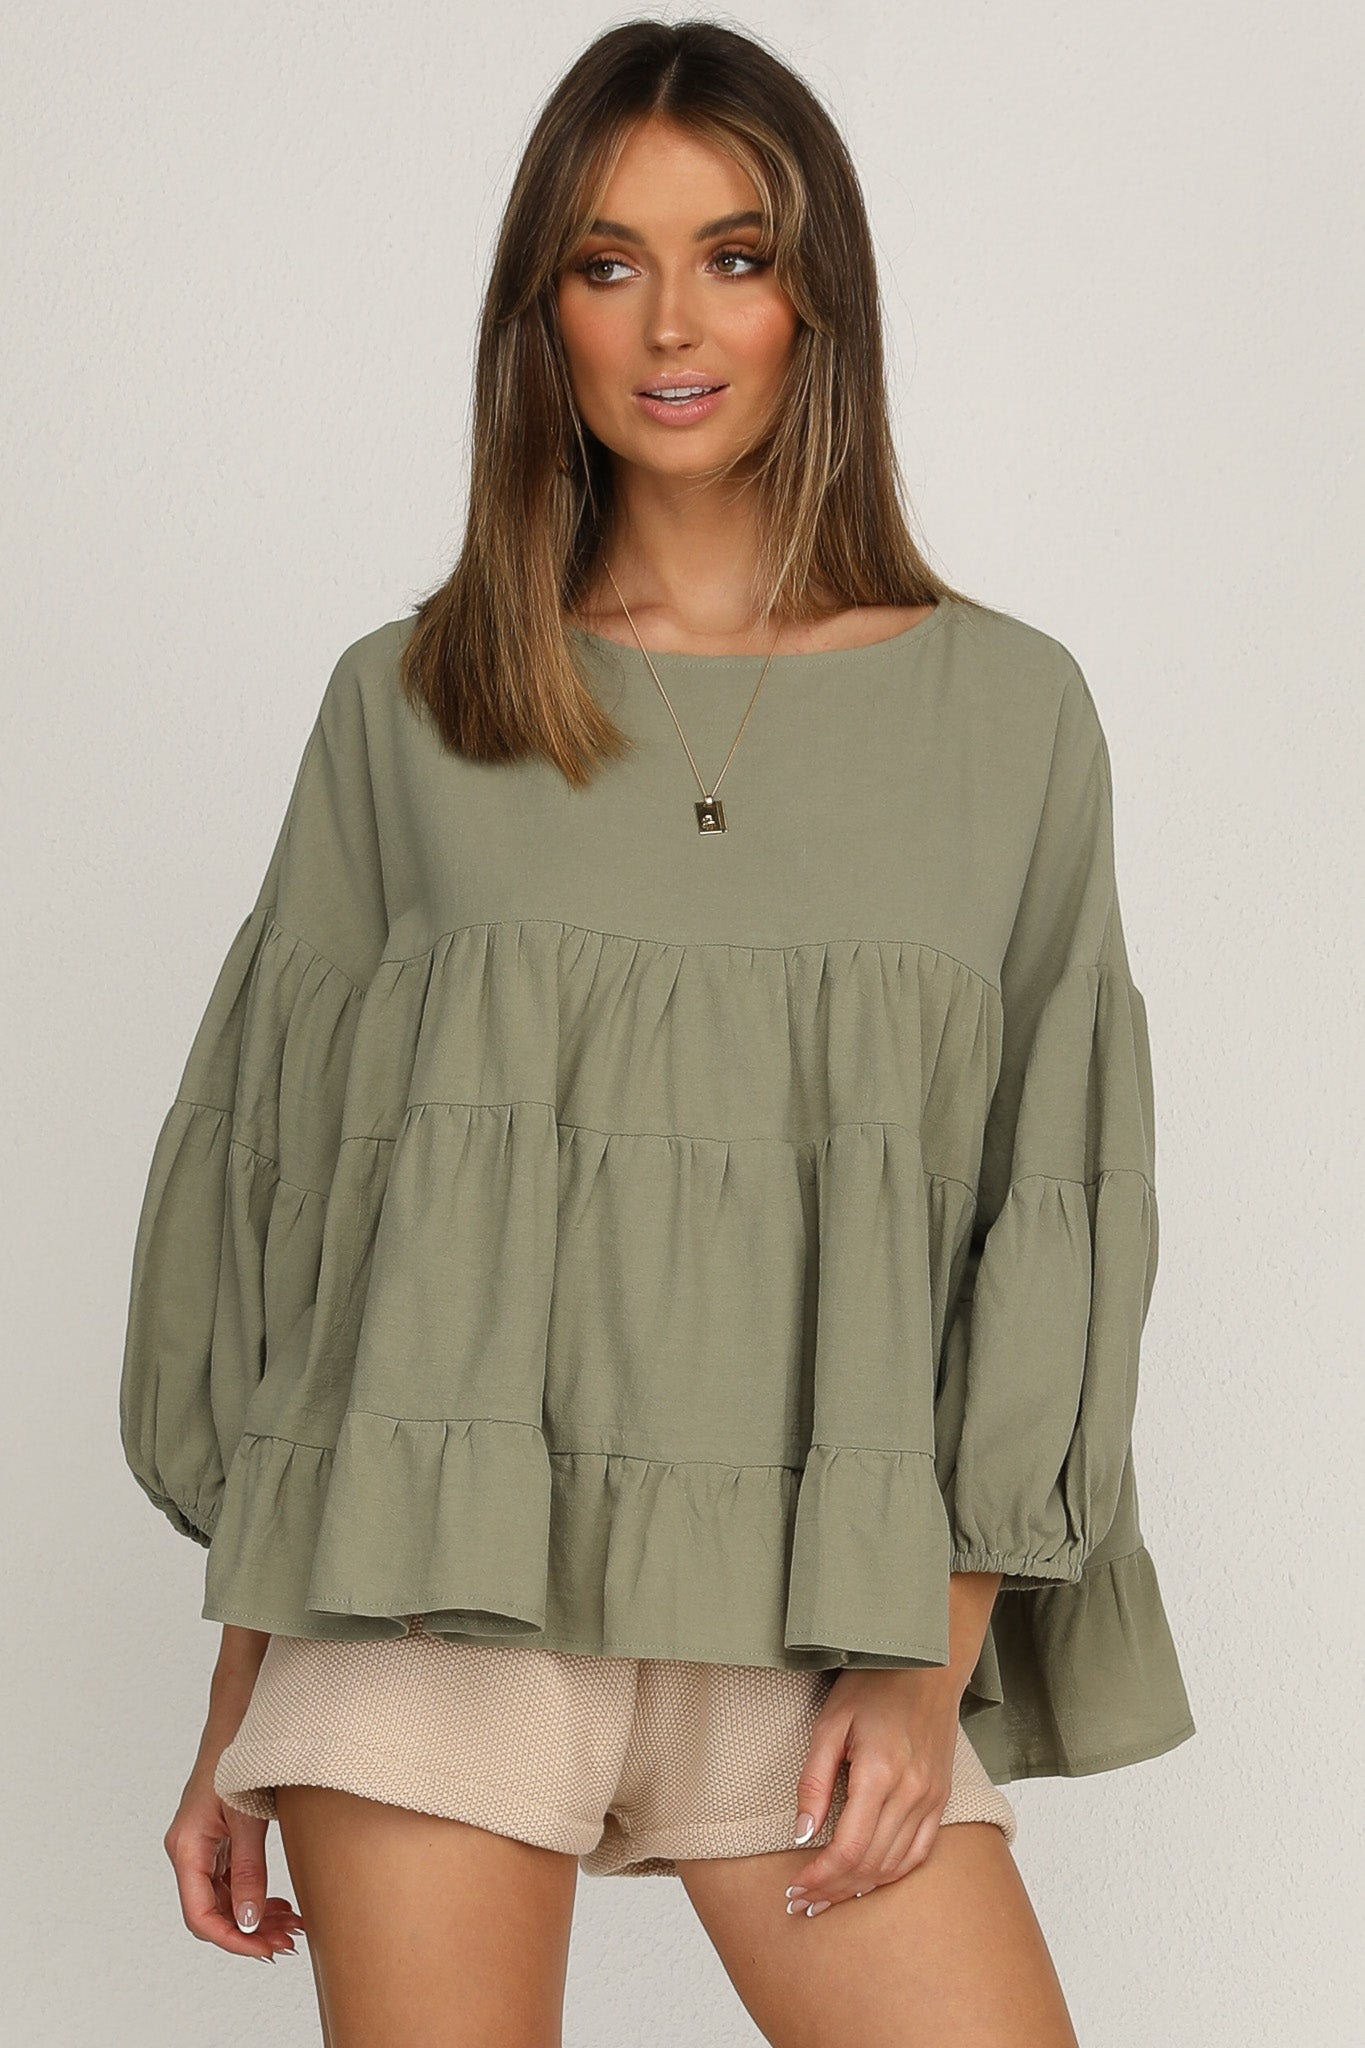 Meet Again Top (Khaki)